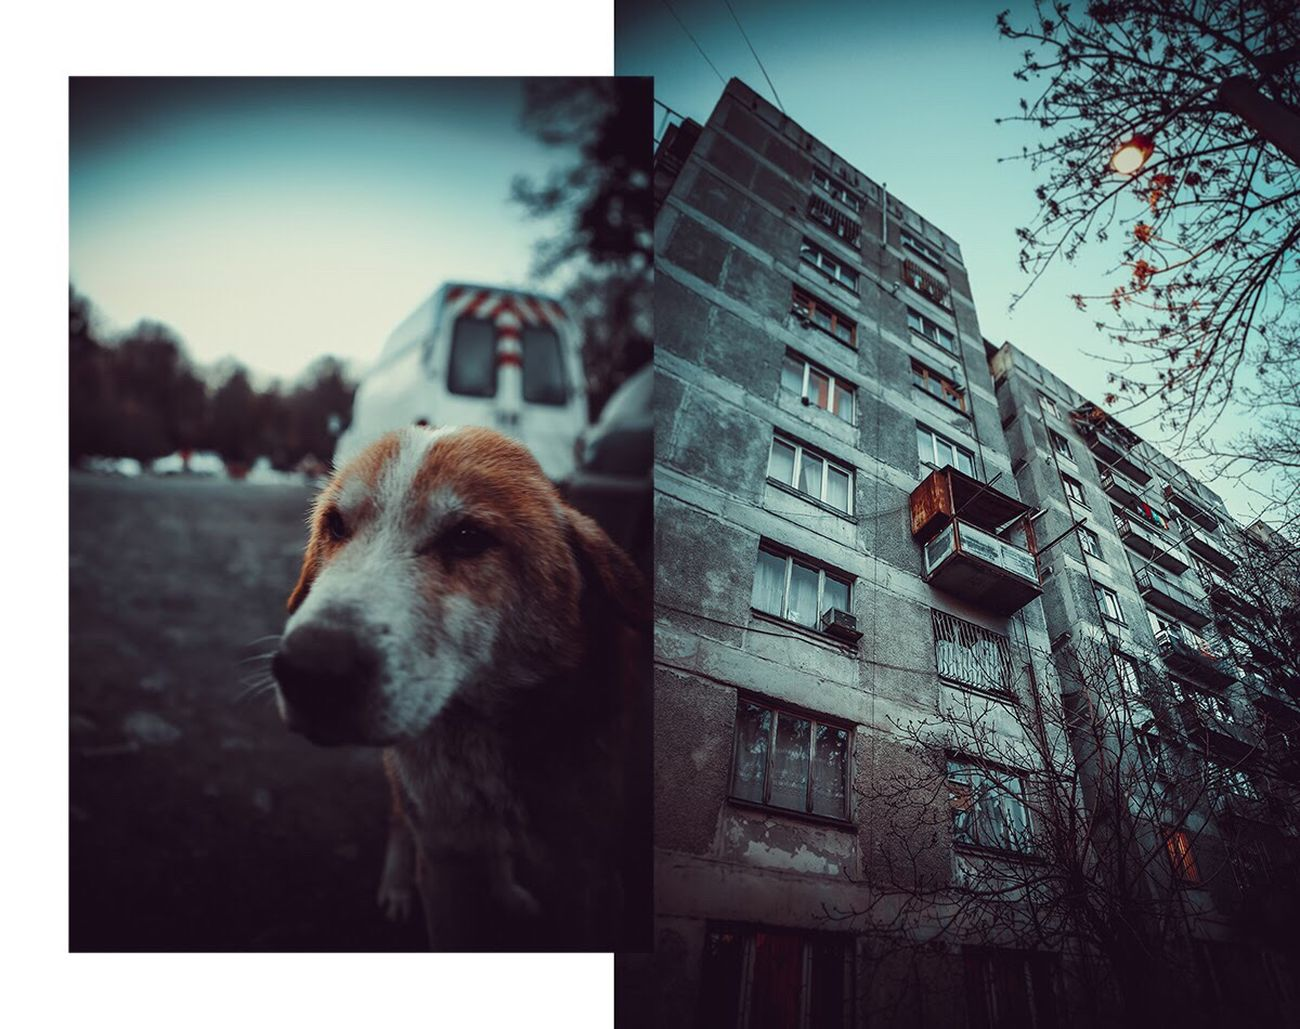 Animal Themes Building Exterior Domestic Animals Day Outdoors Sky Tbilisi